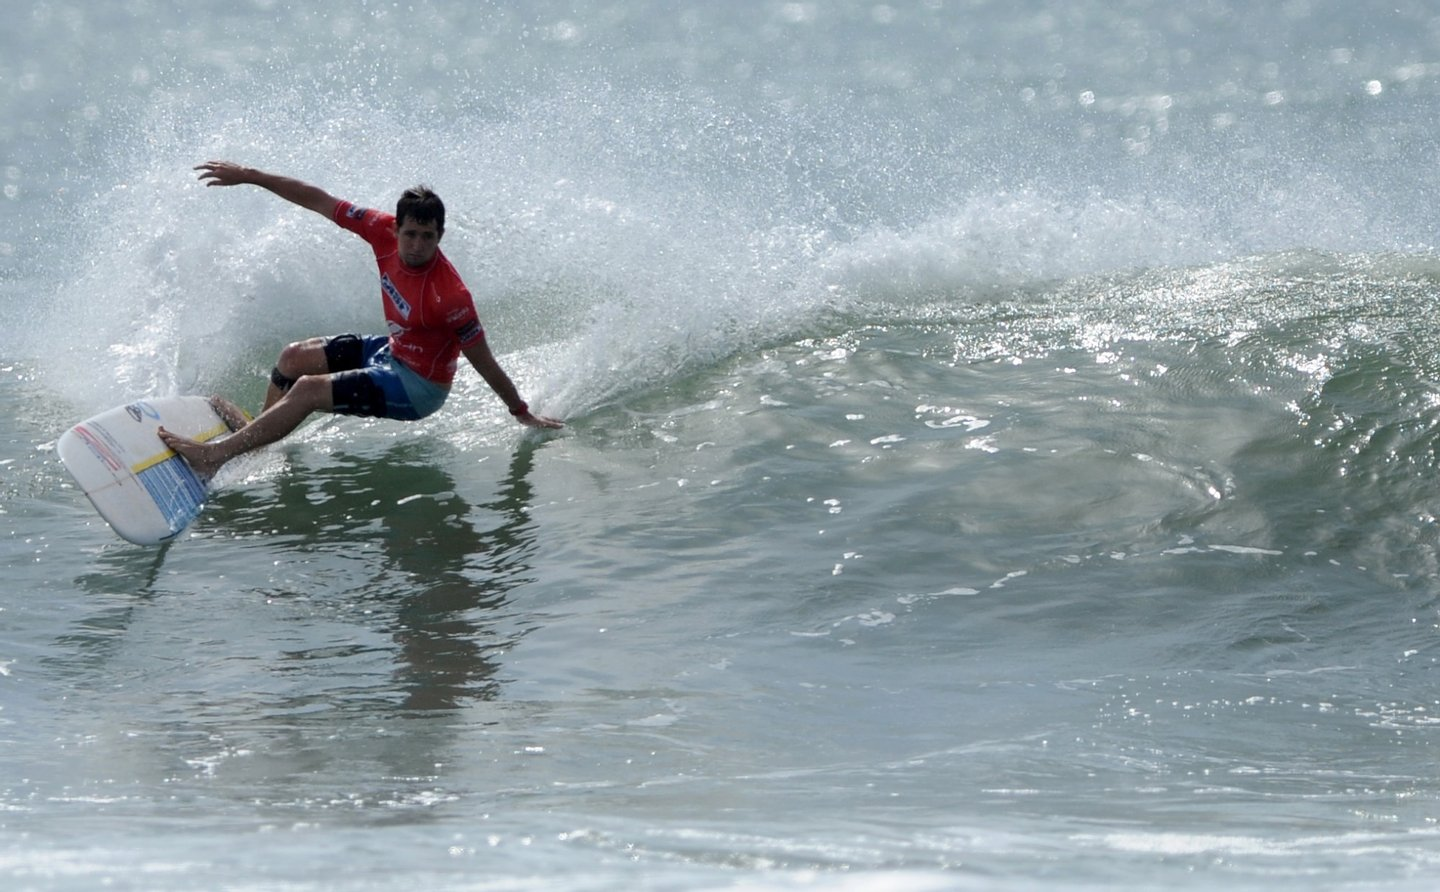 Harley Ingleby of Australia  surfs a wave during an international surfing event at Sri Lanka's eastern coastal resort of Arugam bay on September 4, 2011. With surfers from the UK, USA, Hawaii, Netherlands, South Africa, France, Japan and Brazil the competition aims to promote the country's east, which was once plagued by the Tamil rebellion, as a major tourist attraction. AFP PHOTO/ Ishara S.KODIKARA (Photo credit should read Ishara S.KODIKARA/AFP/Getty Images)